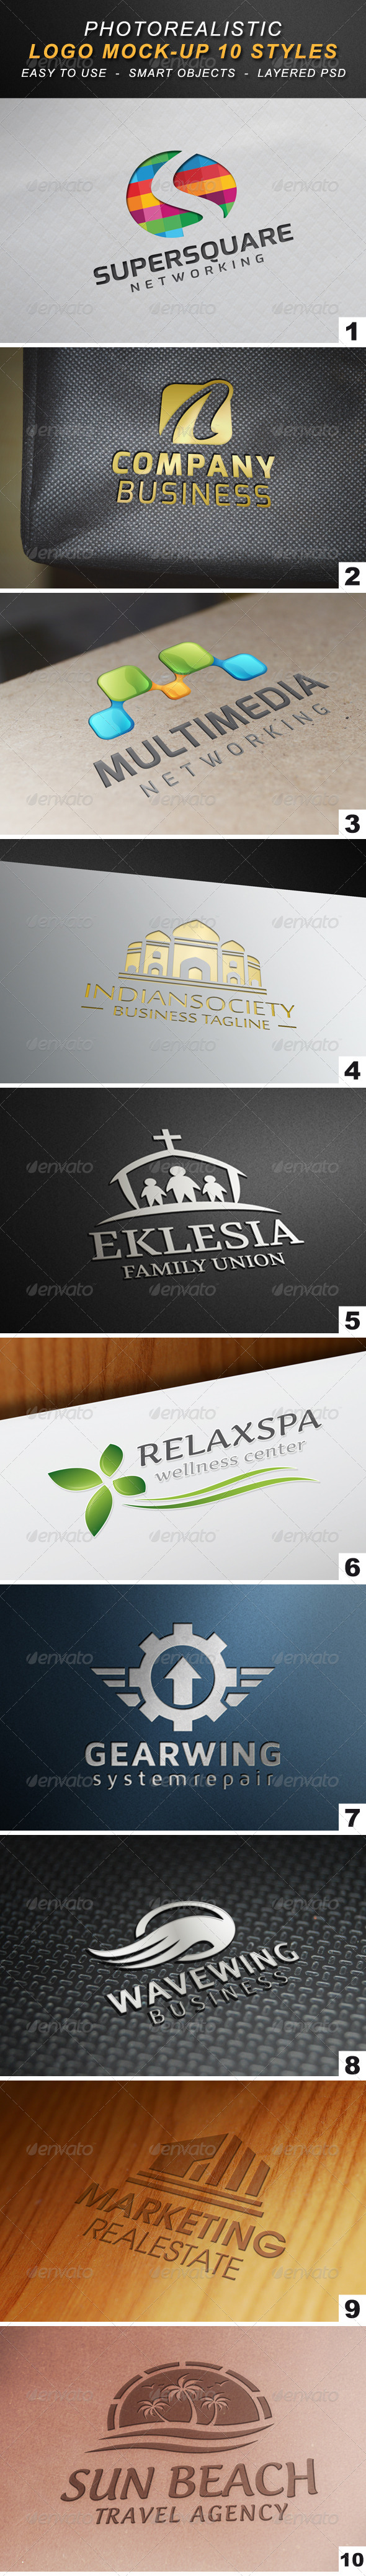 GraphicRiver Photorealistic Logo Mock-Up 10 Styles 5295542